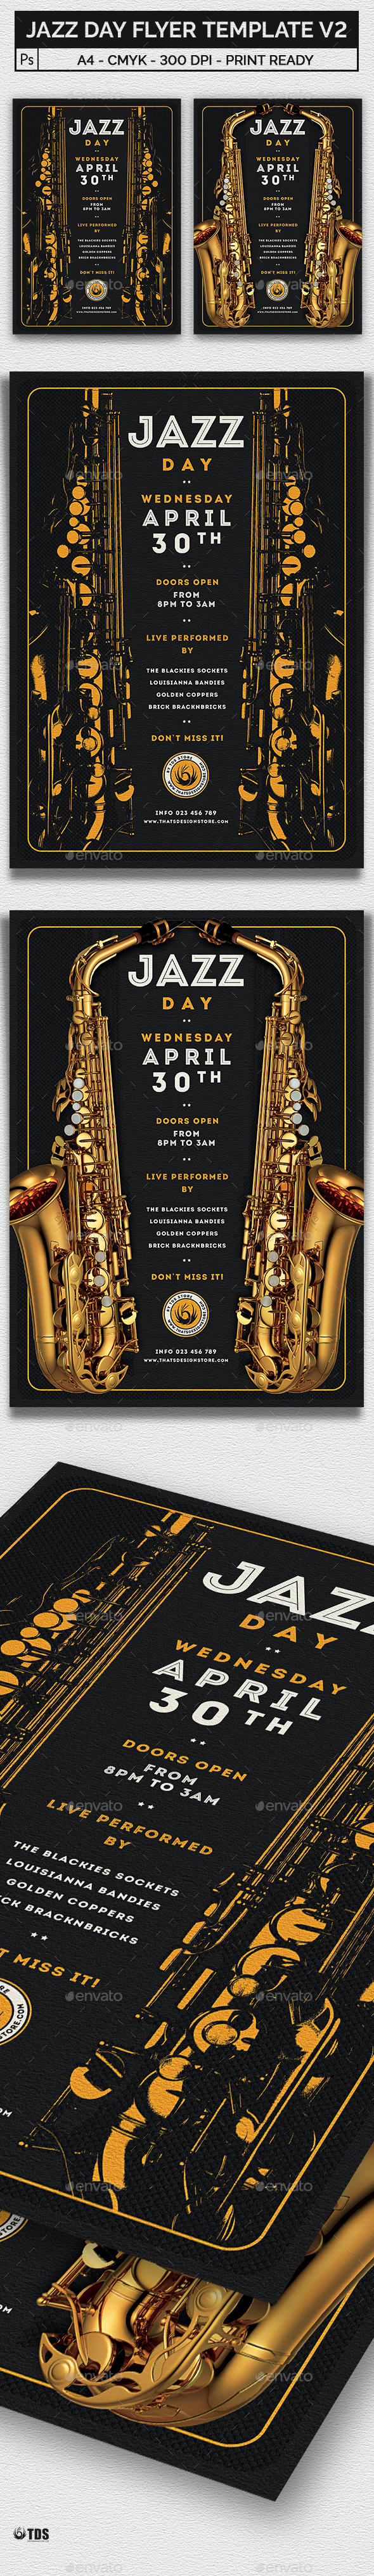 Jazz Day Flyer Template V2 - Concerts Events